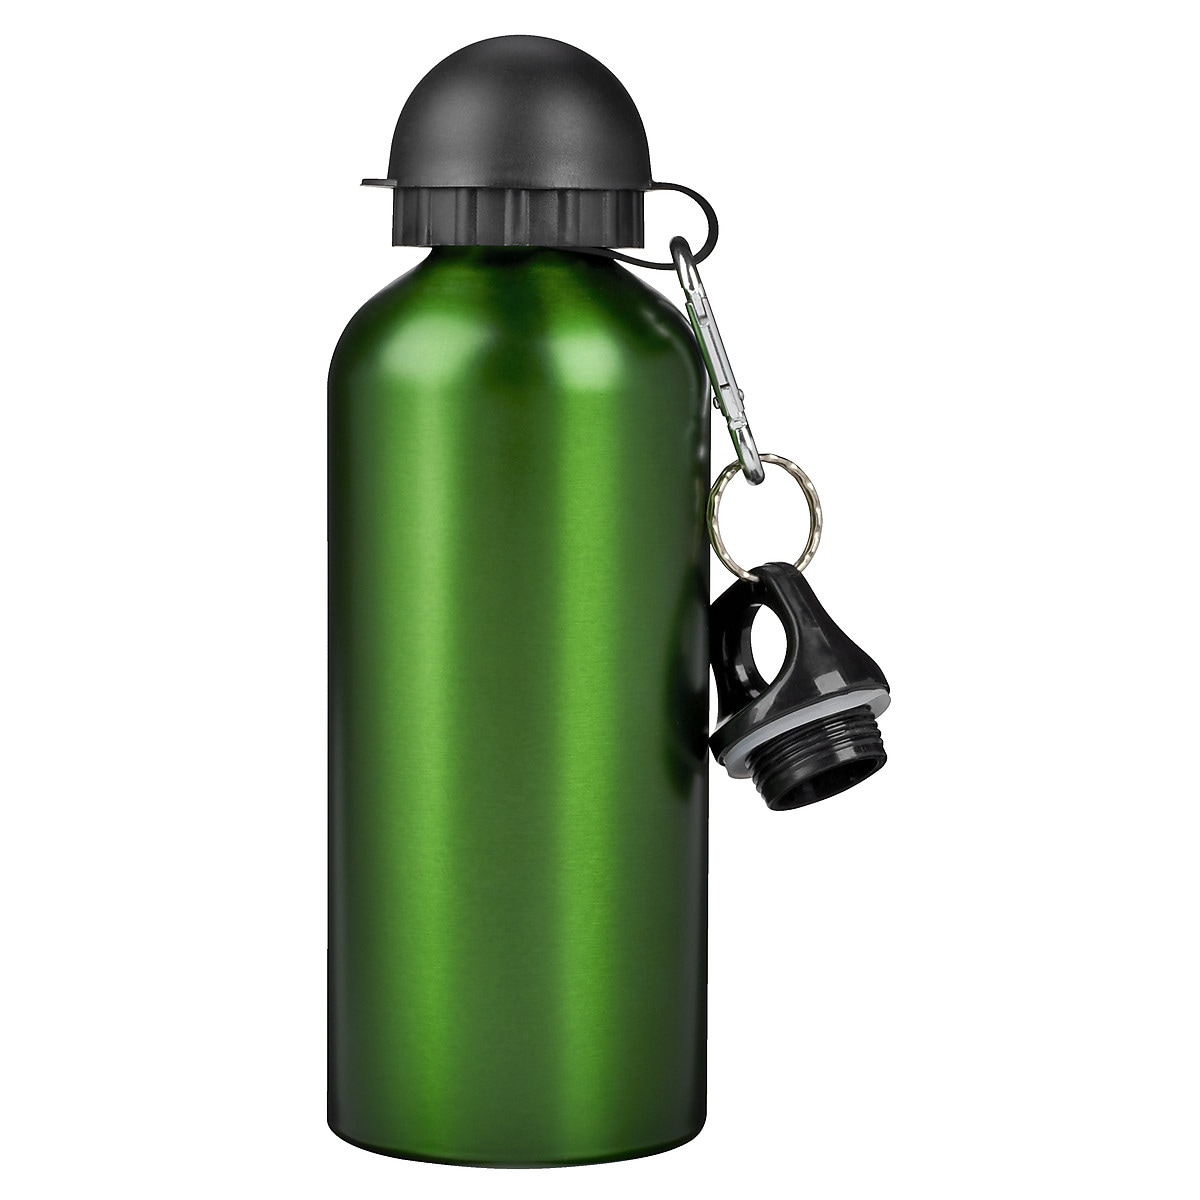 Asaklitt 600 ml Stainless Steel Water Bottle